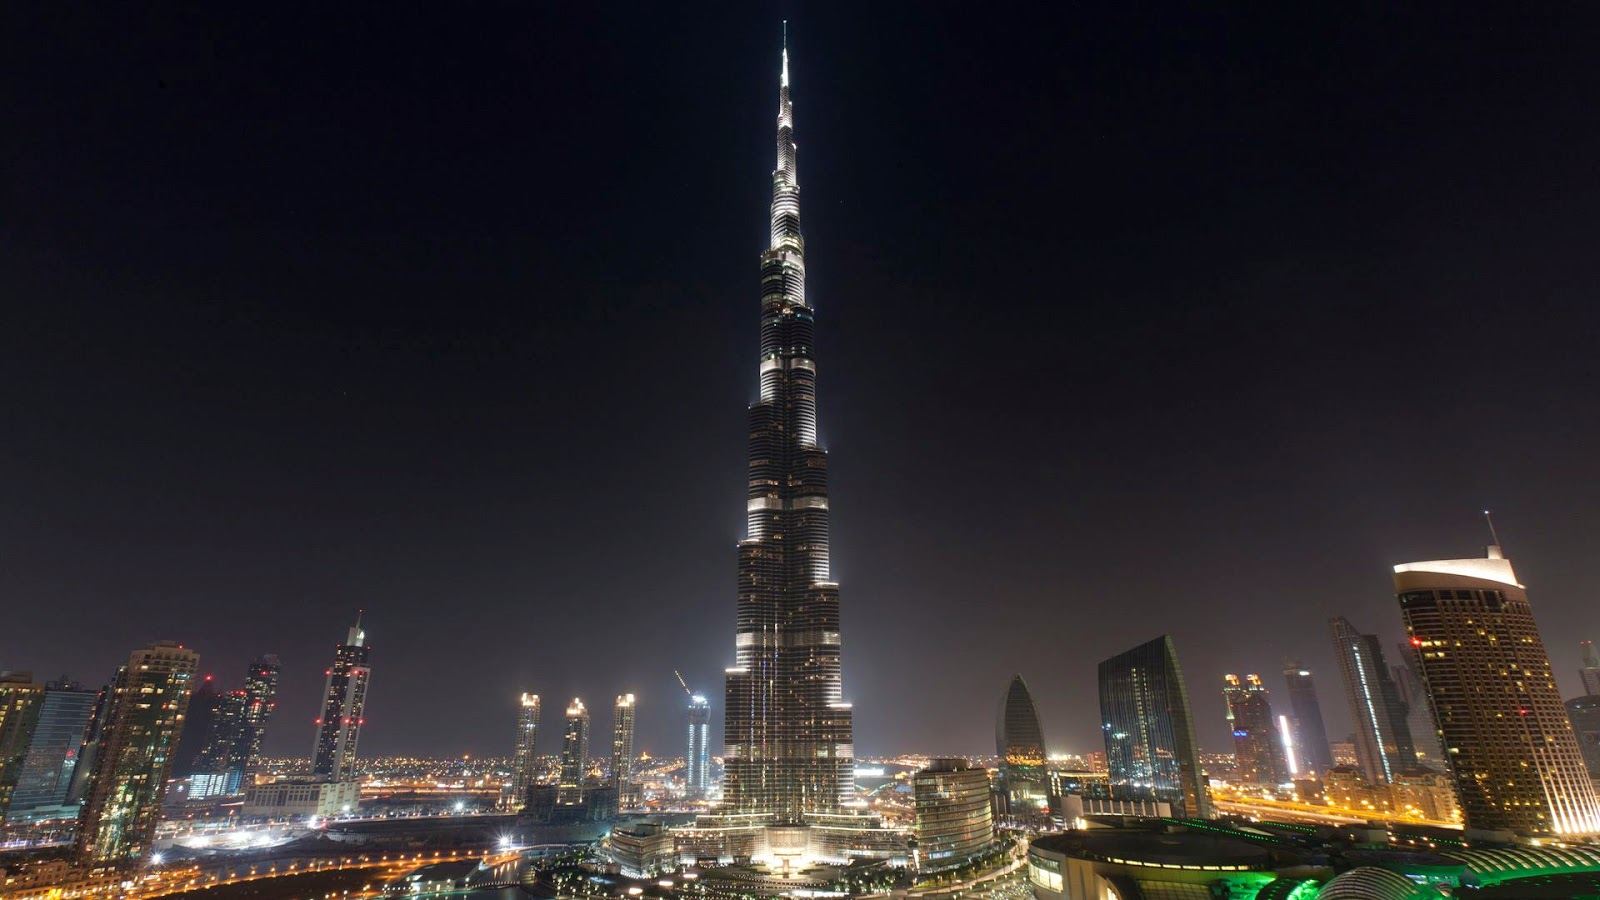 Burj khalifa tallest man made structure in the world in for Famous structures in dubai